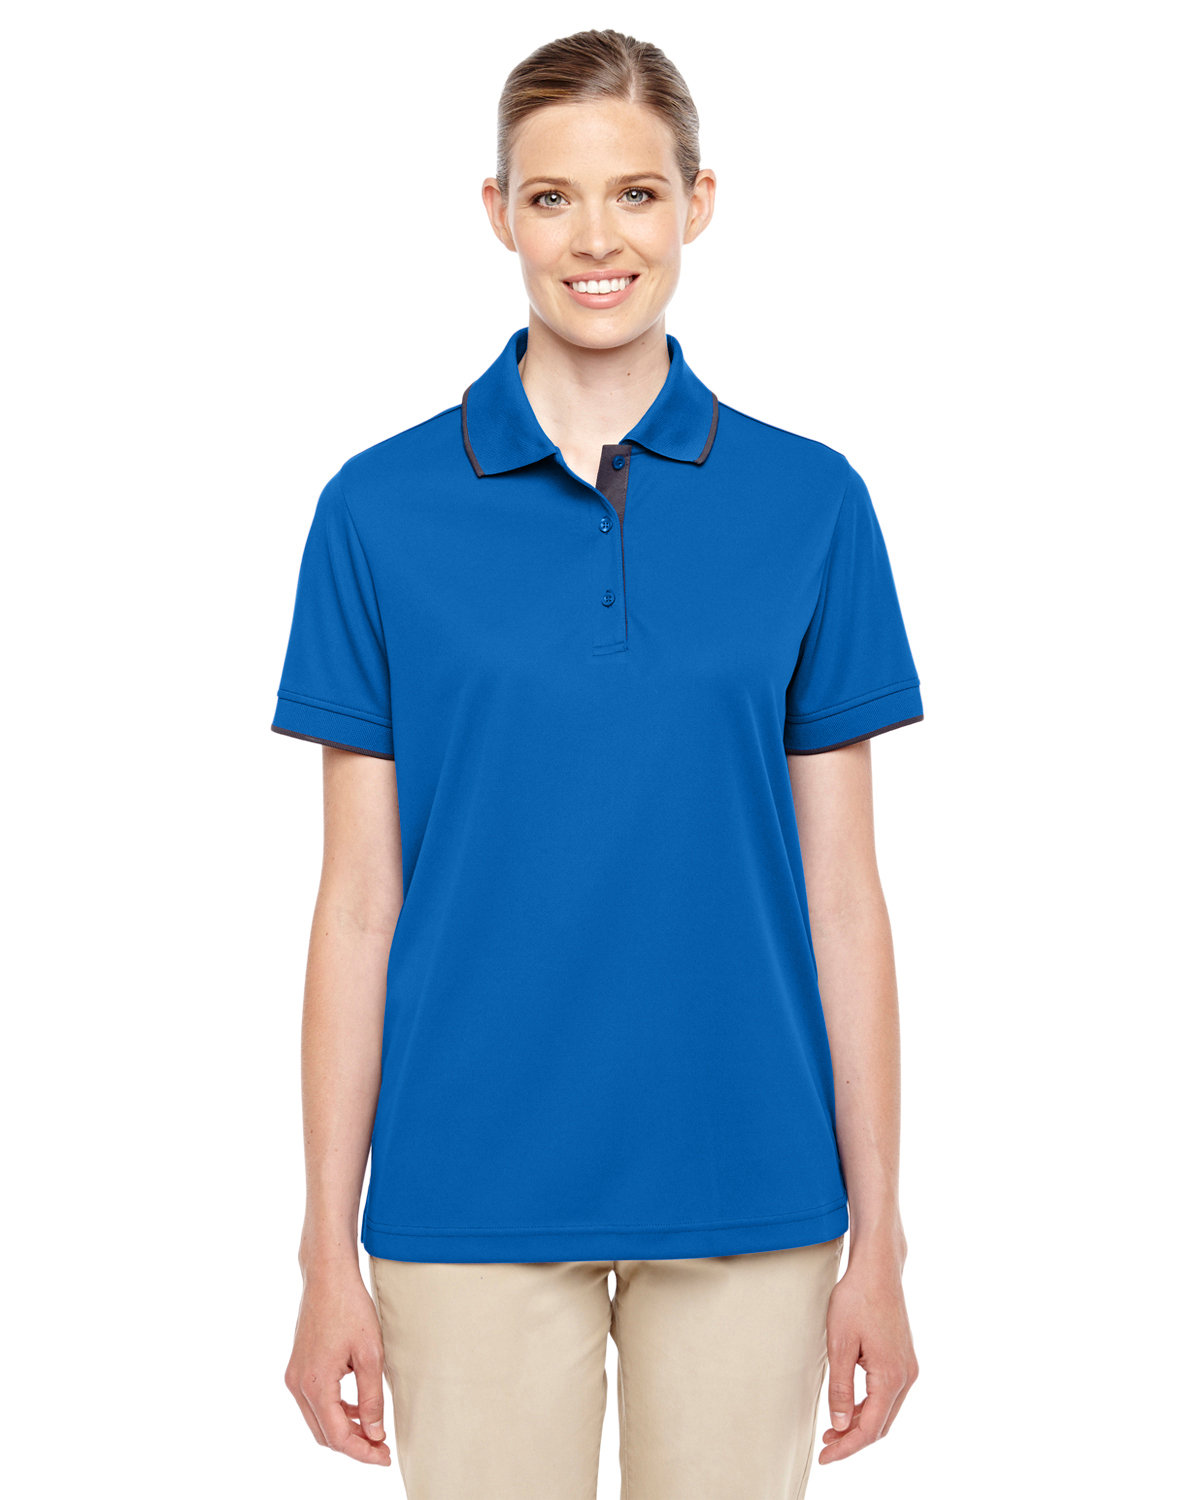 Core 365 Ladies' Motive Performance Piqué Polo with Tipped Collar TRU ROYAL/ CRBN